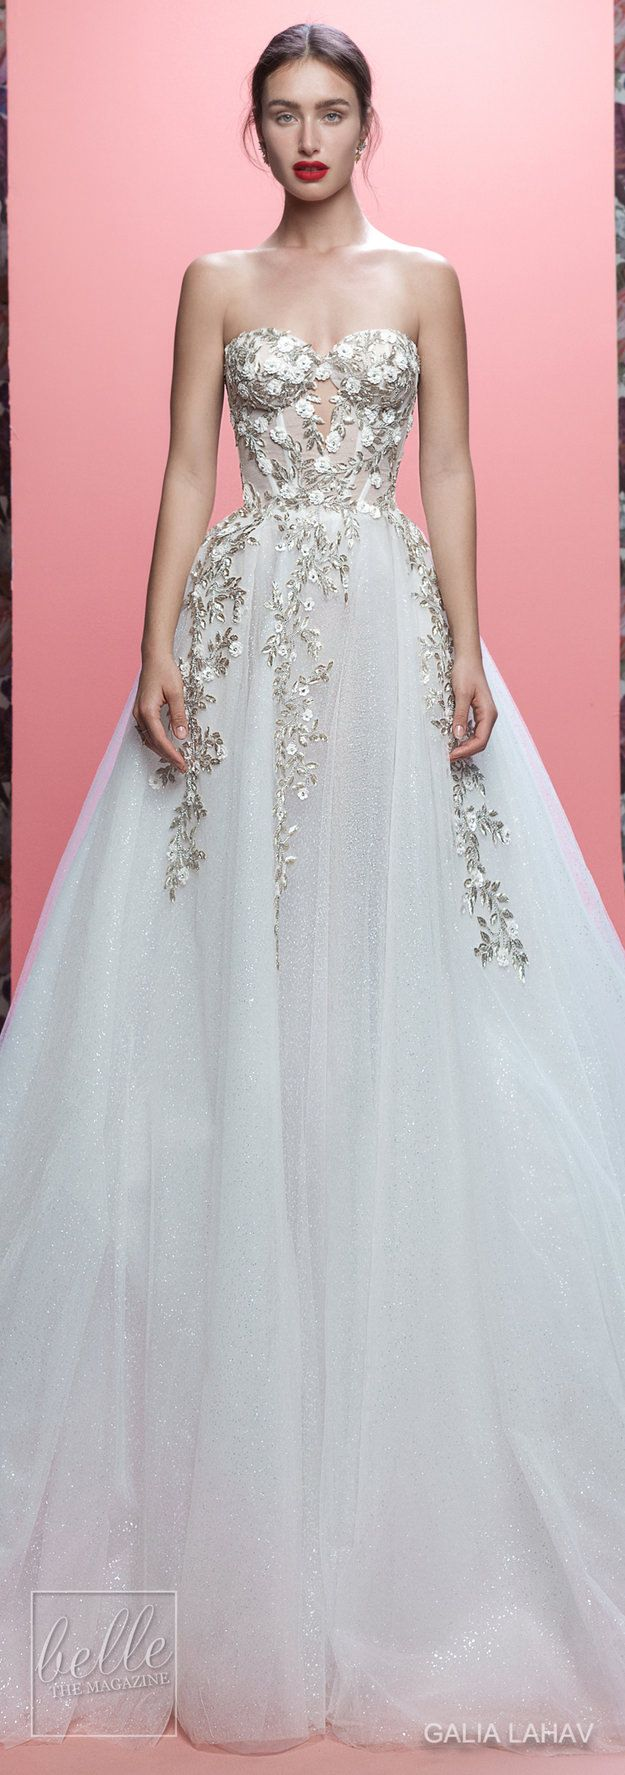 Galia Lahav Couture Bridal Spring Collection 2017: Queen of Hearts